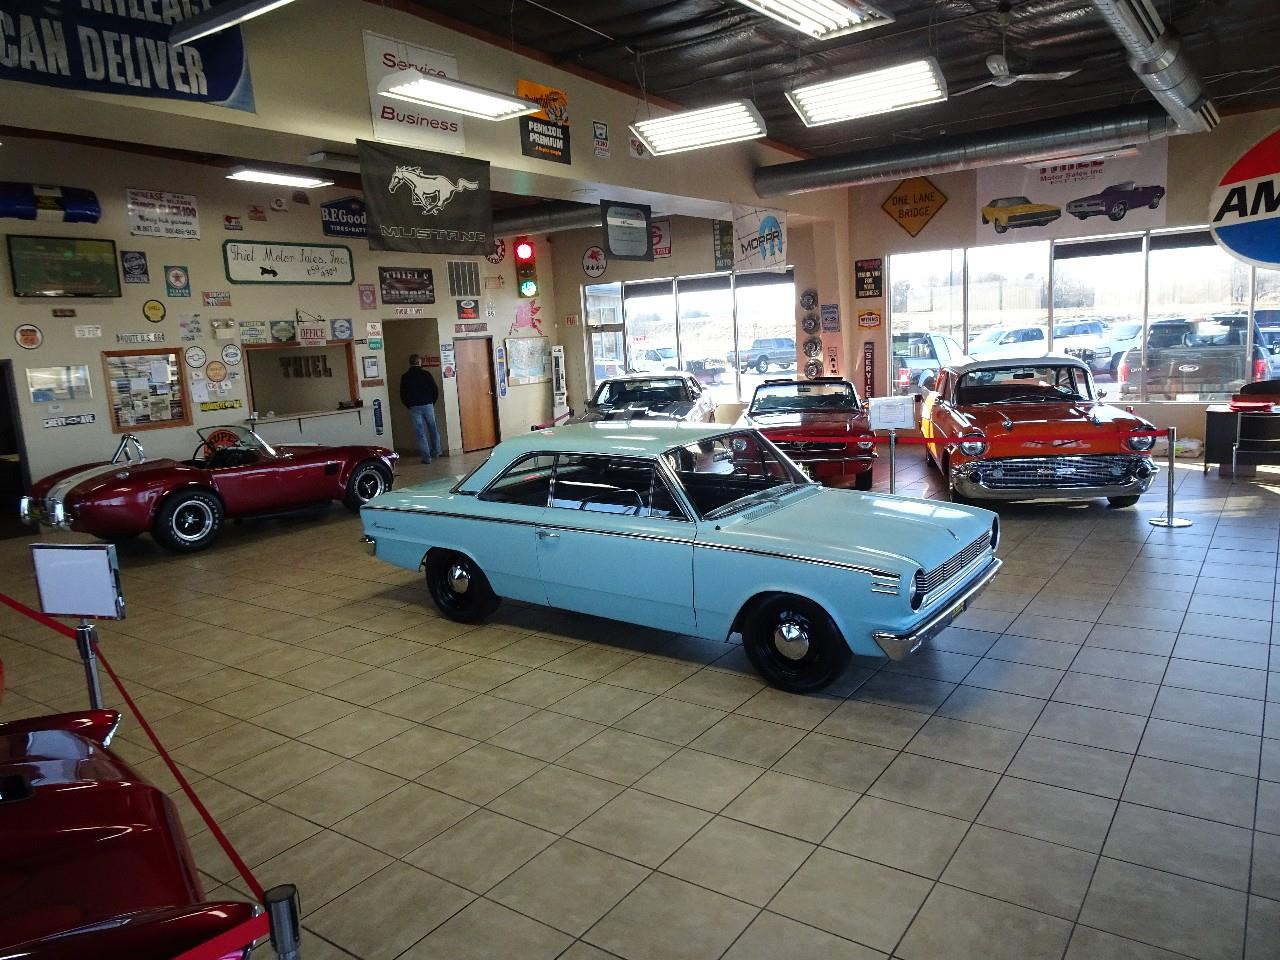 Large Picture of 1965 Rambler American located in De Witt Iowa - $22,997.00 Offered by Thiel Motor Sales Inc. - P3YN